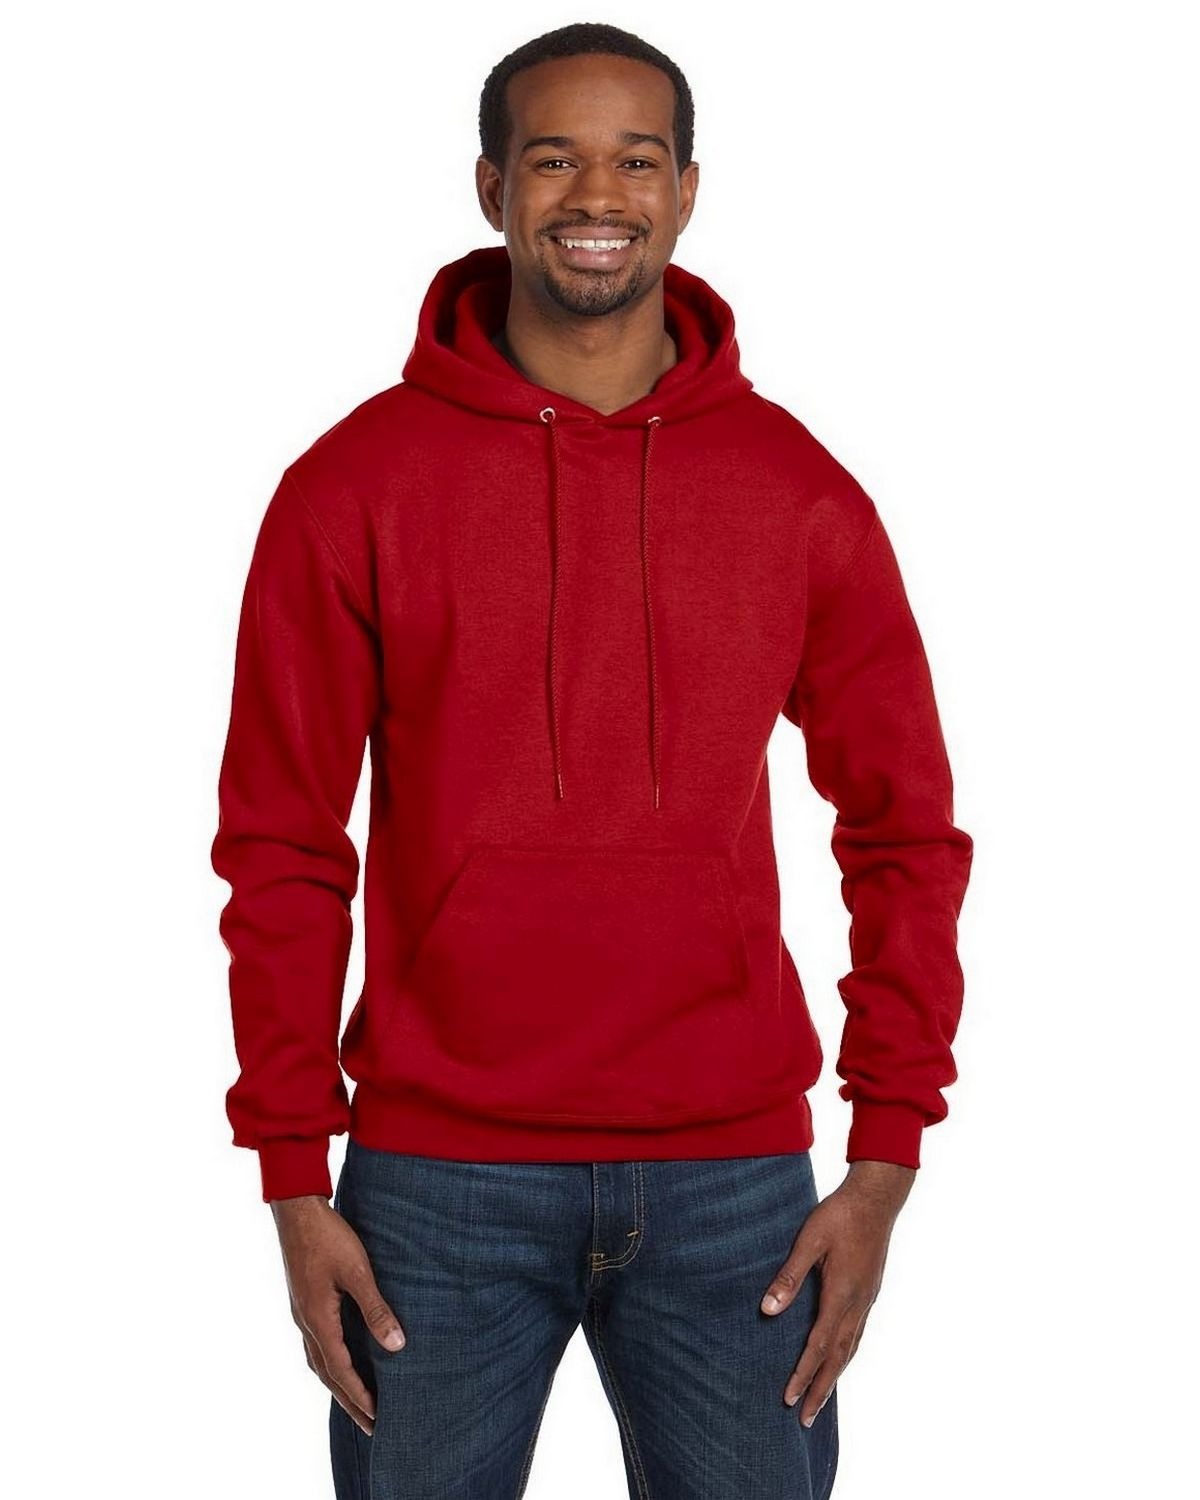 Champion S700 EcoSmart Pullover Hood - Scarlet - S S700